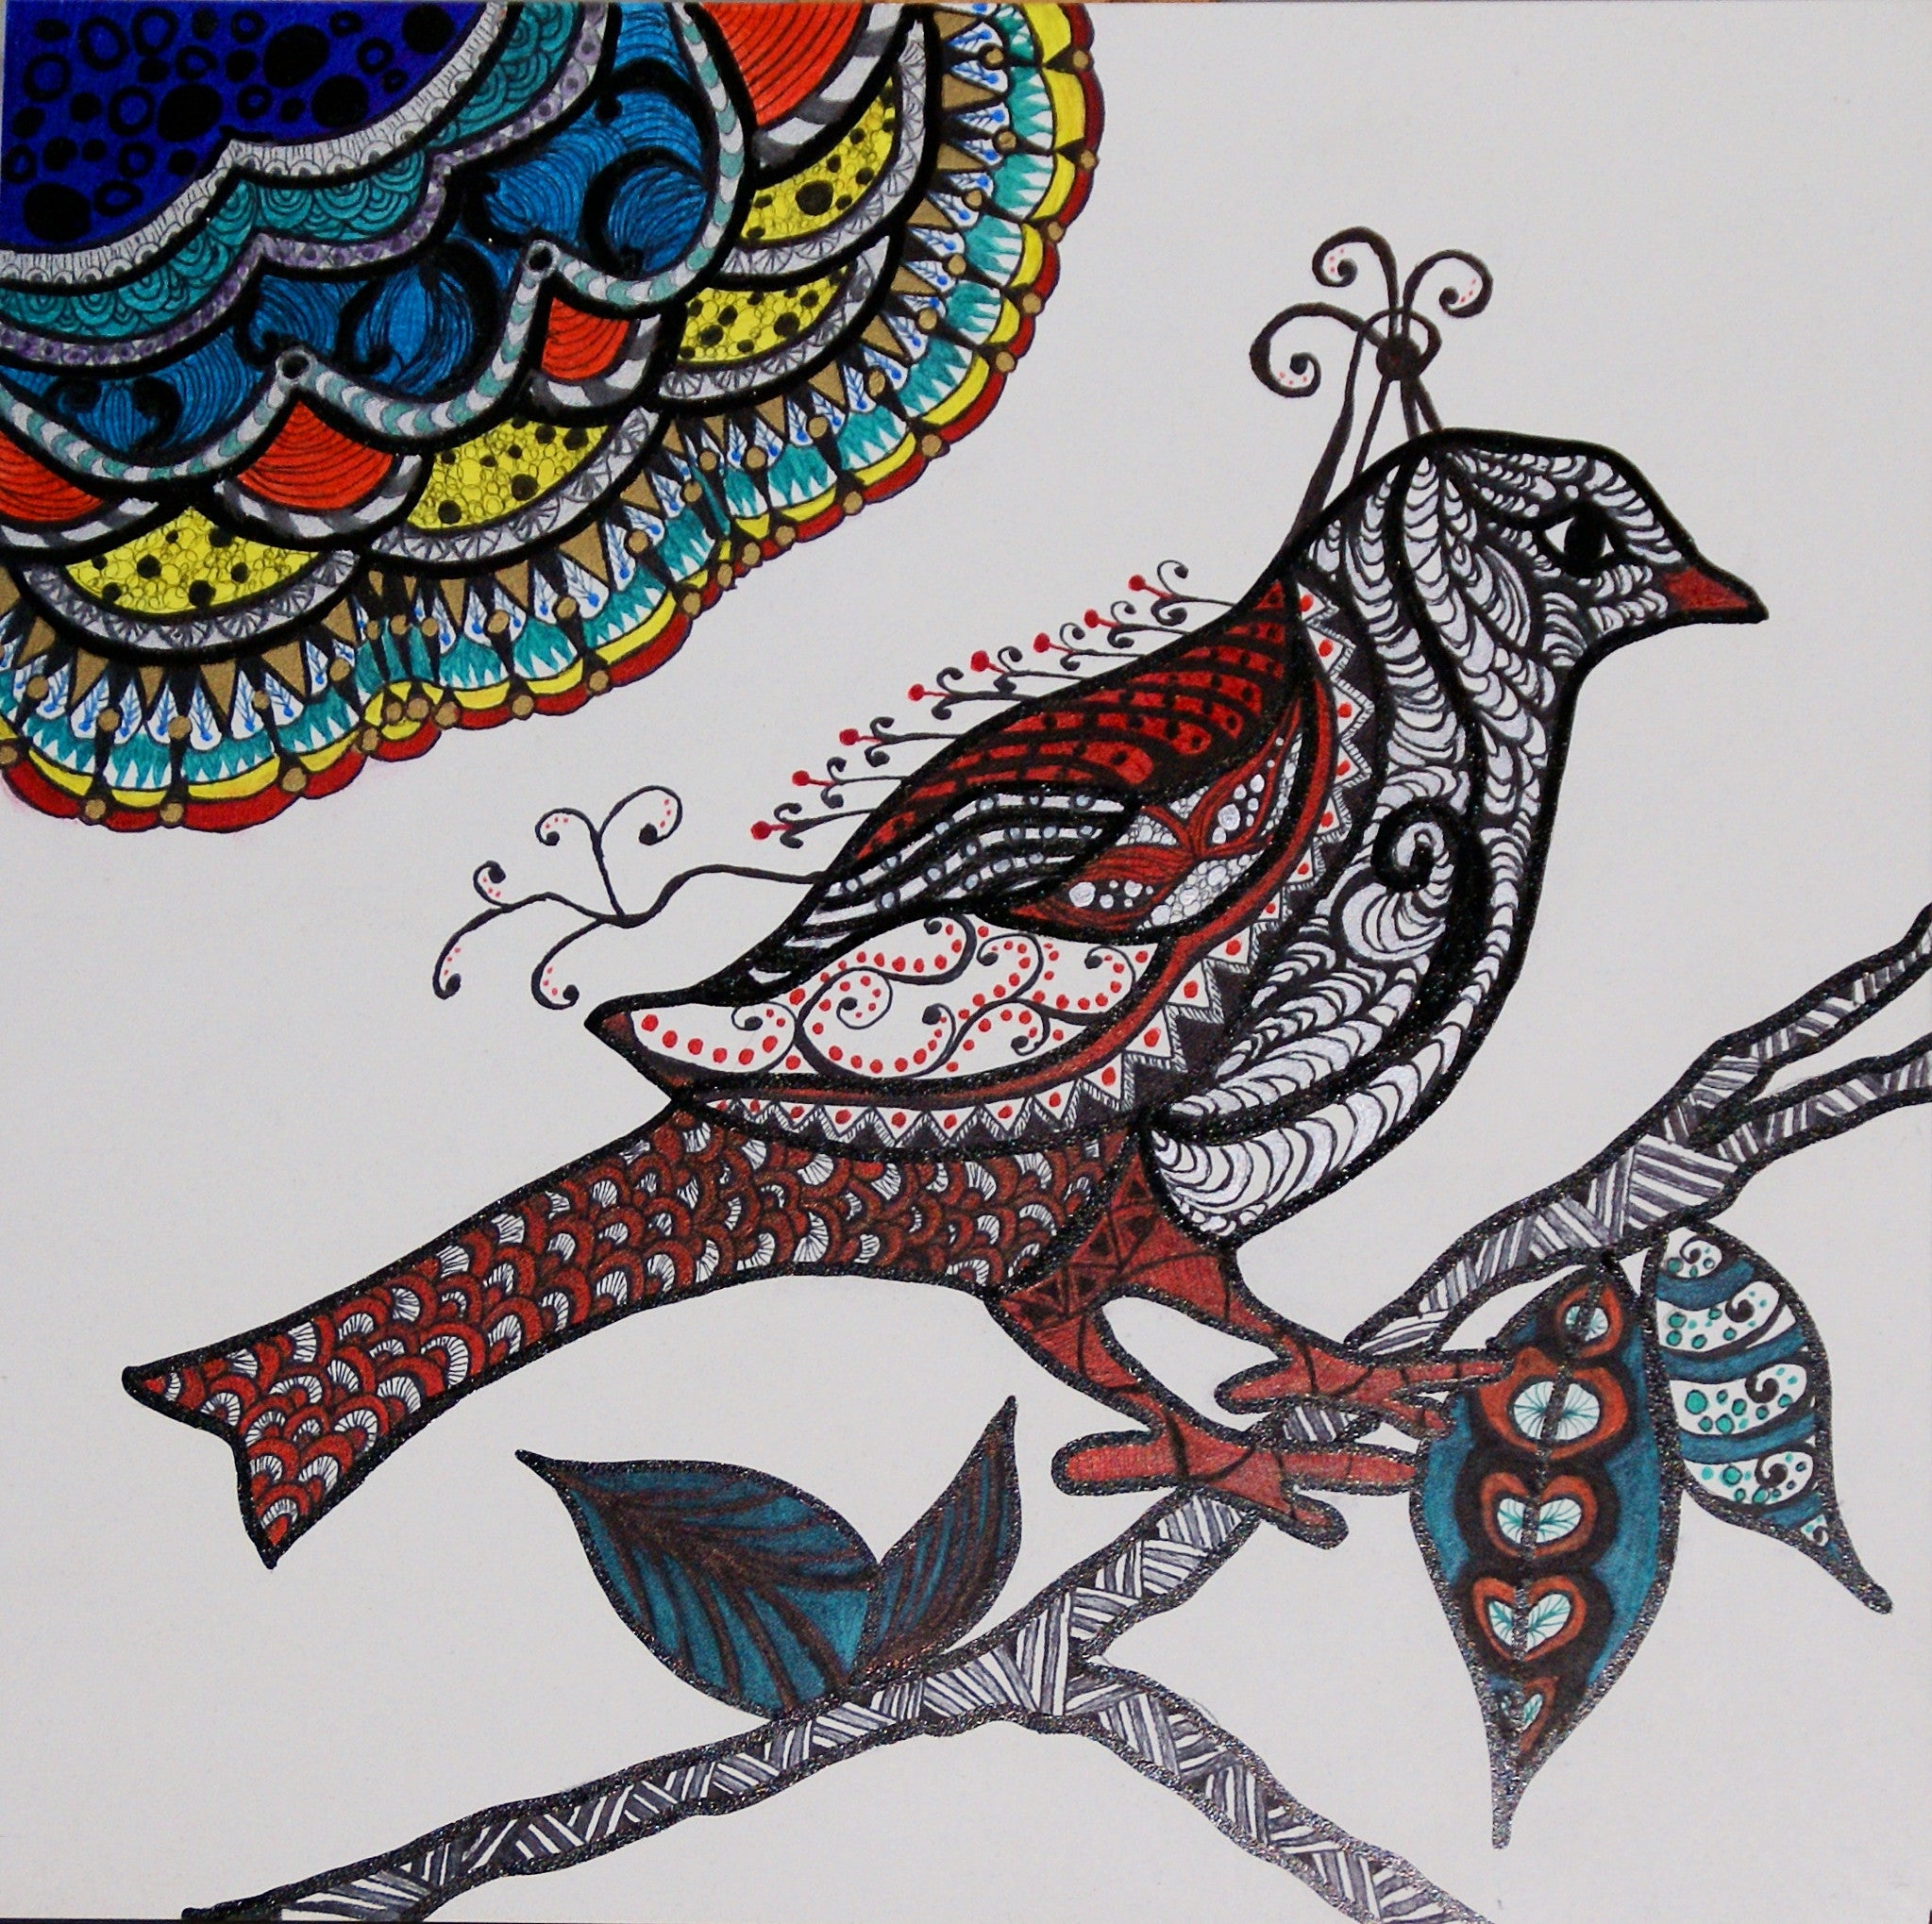 Zentangle 3 - Abstract Artwork by Nancy Chovancek Zentangle - abstract artwork Zentangle - zentangle artwork Abstract Artwork by Nancy Chovancek - 123rf.com